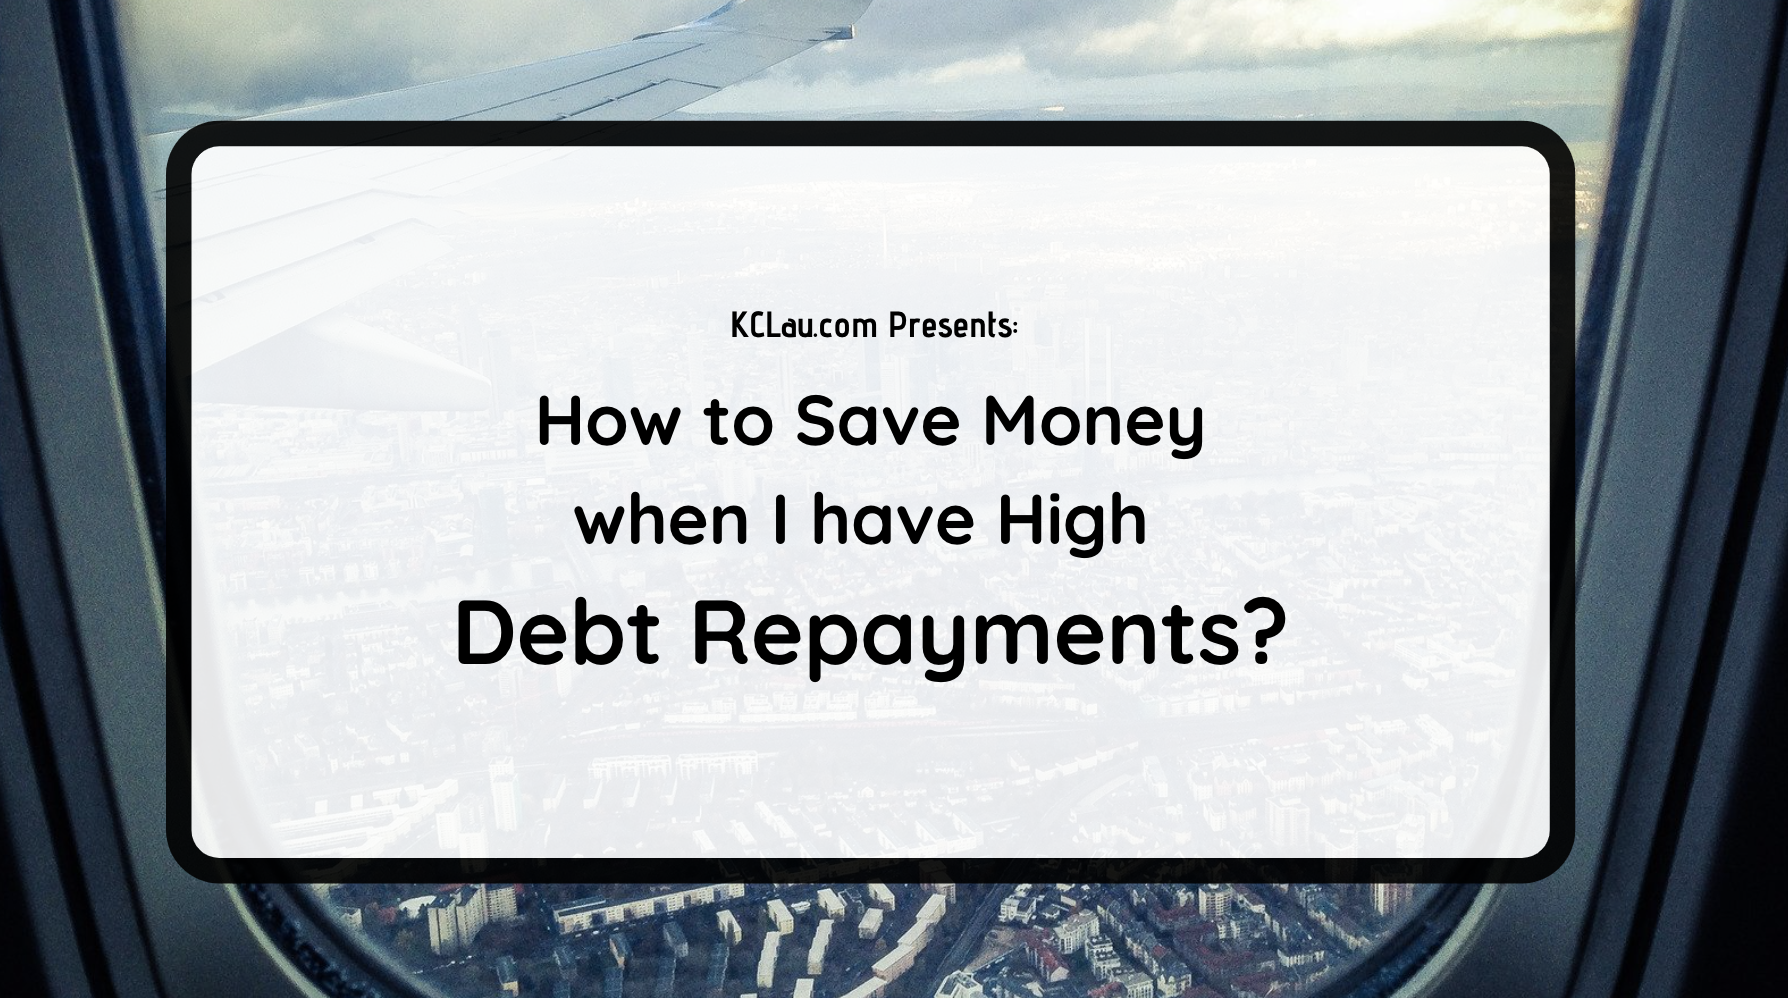 How to Save Money When I Have High Debt Repayments?